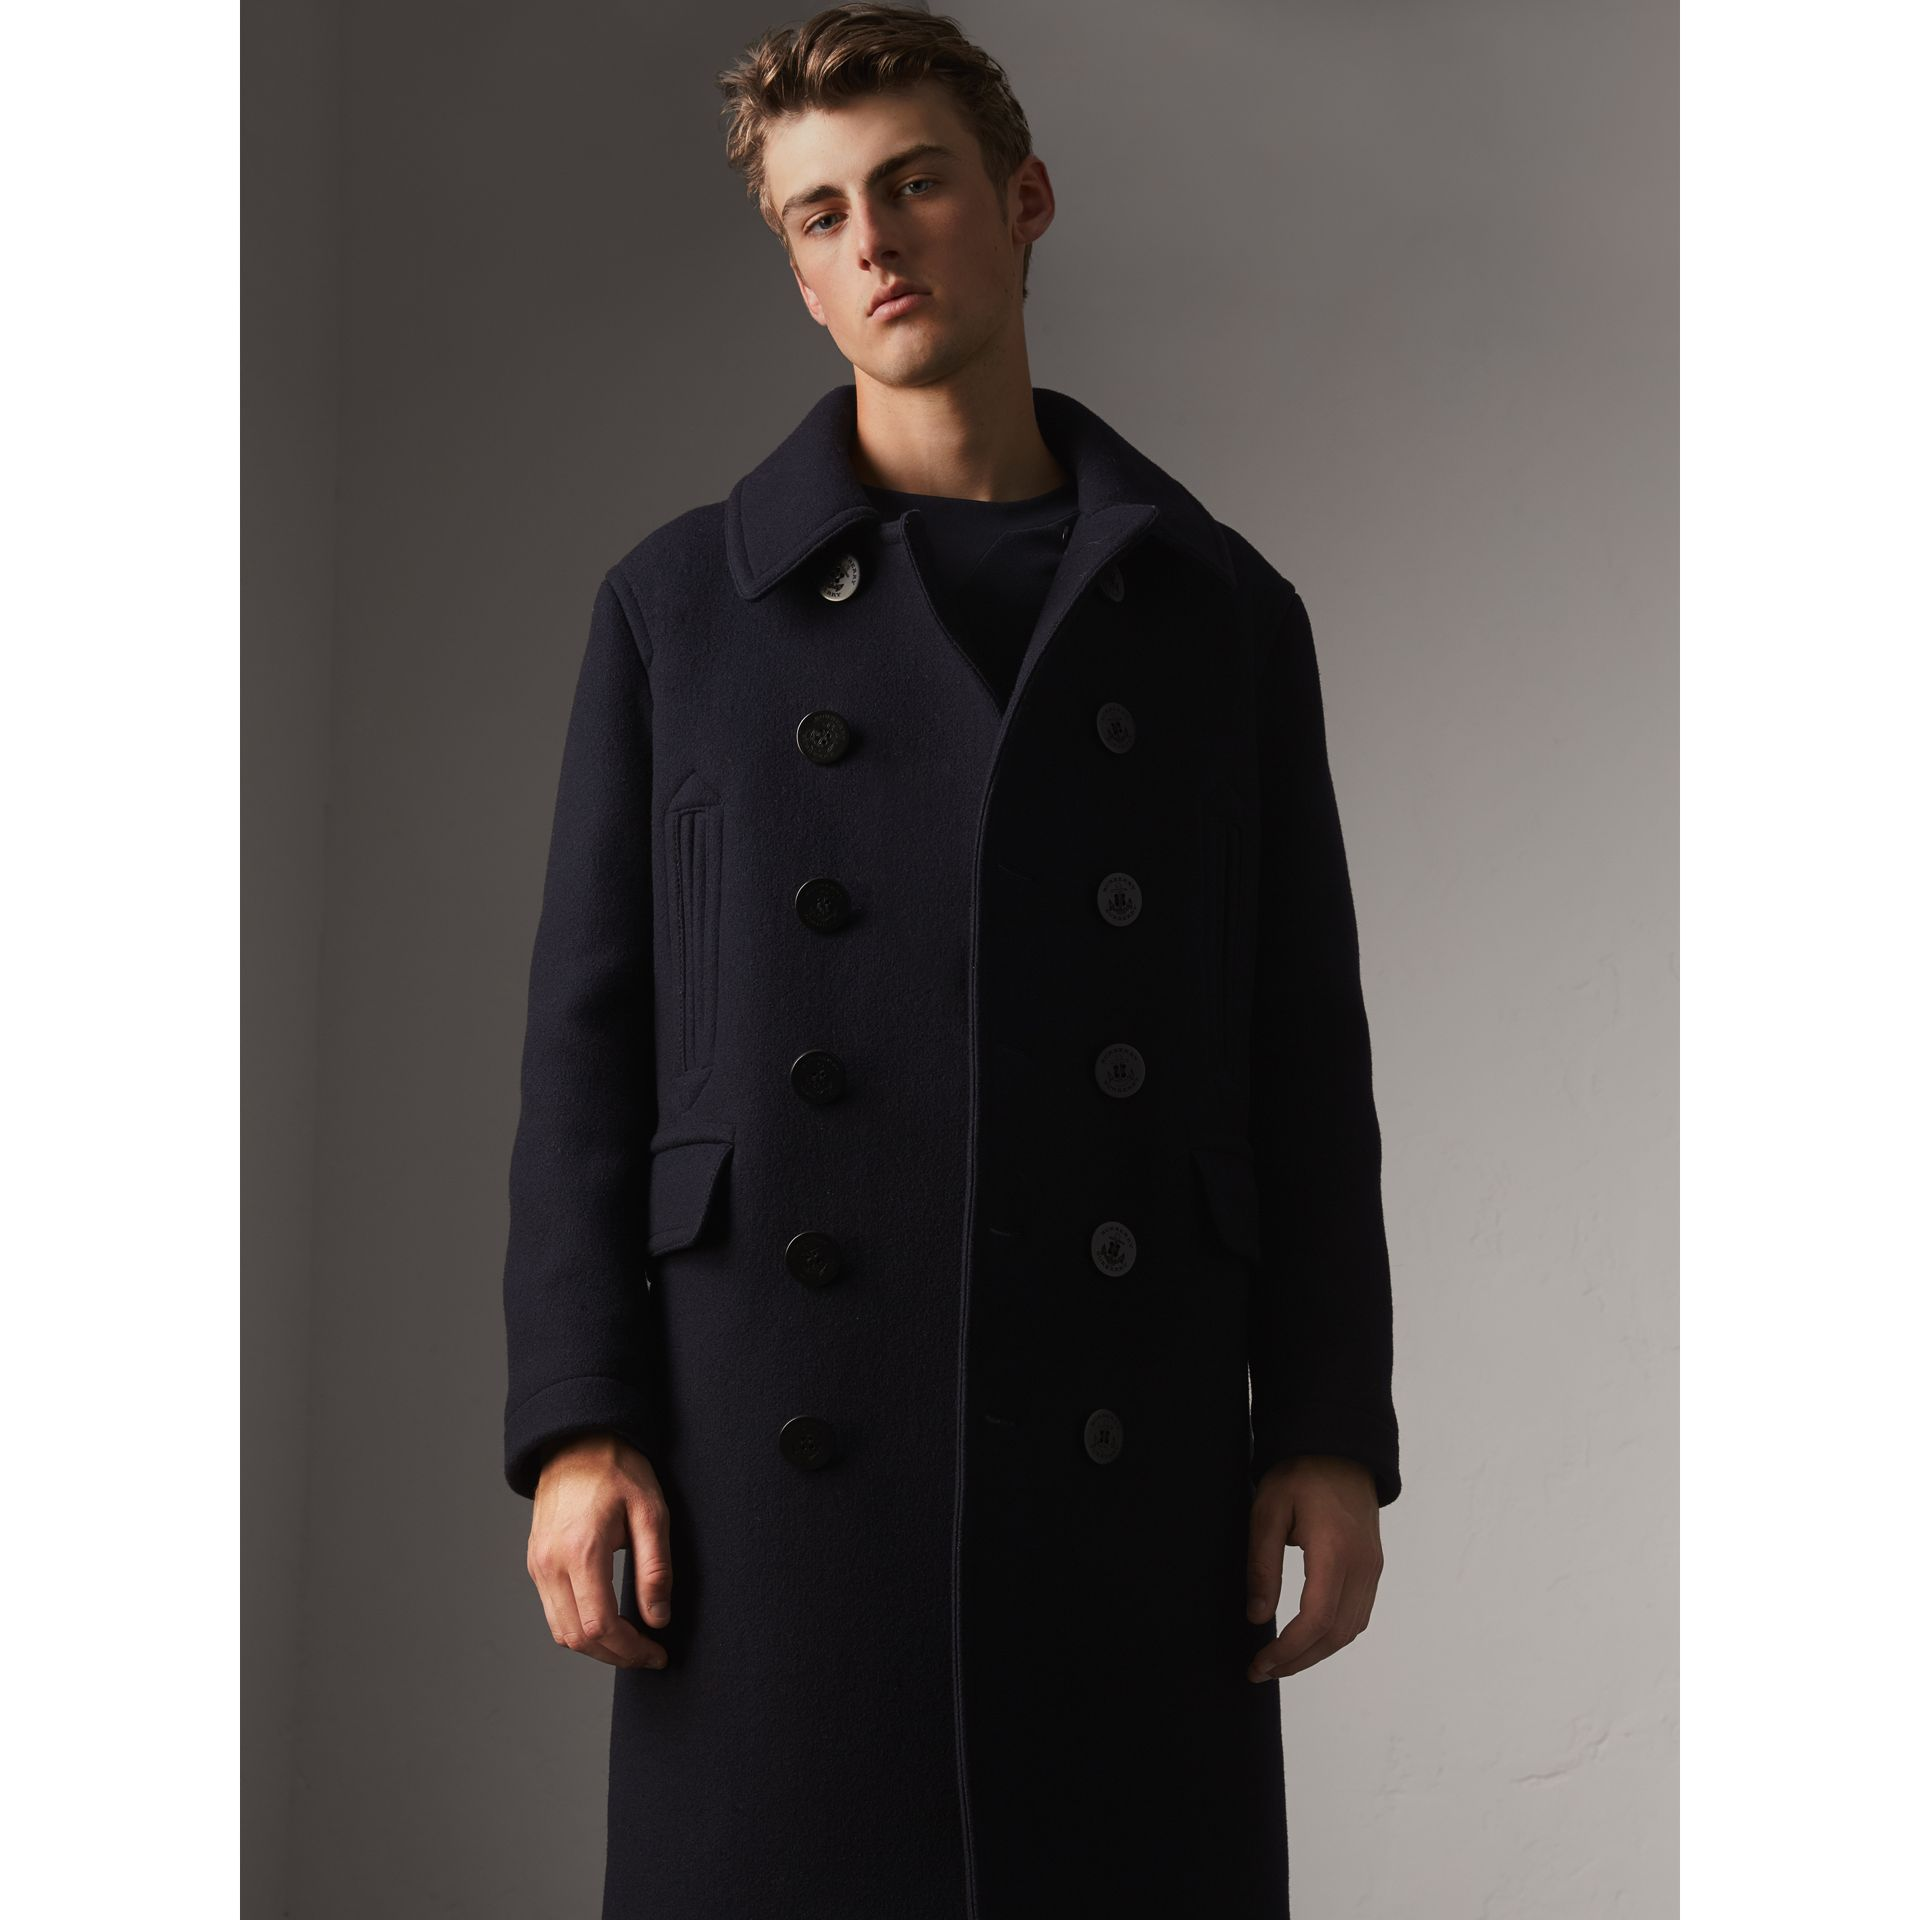 Wool Blend Double-breasted Coat in Navy - Men | Burberry Canada - gallery image 6